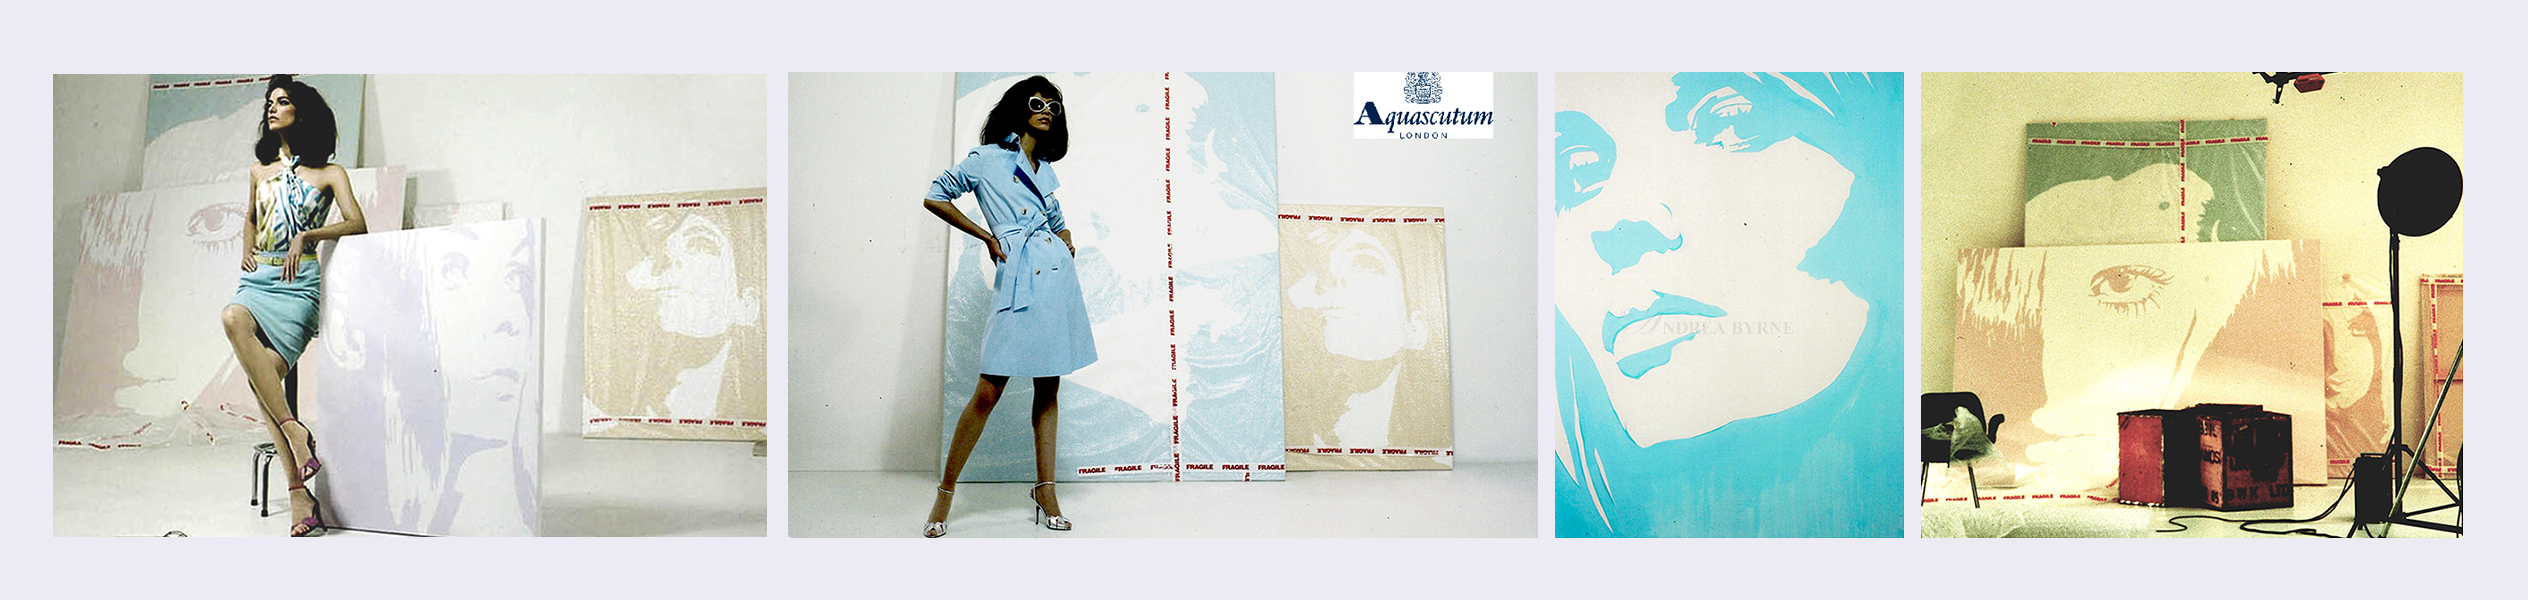 Aquascutum Press Campaign & Brochure (2003)  (see link in panel)